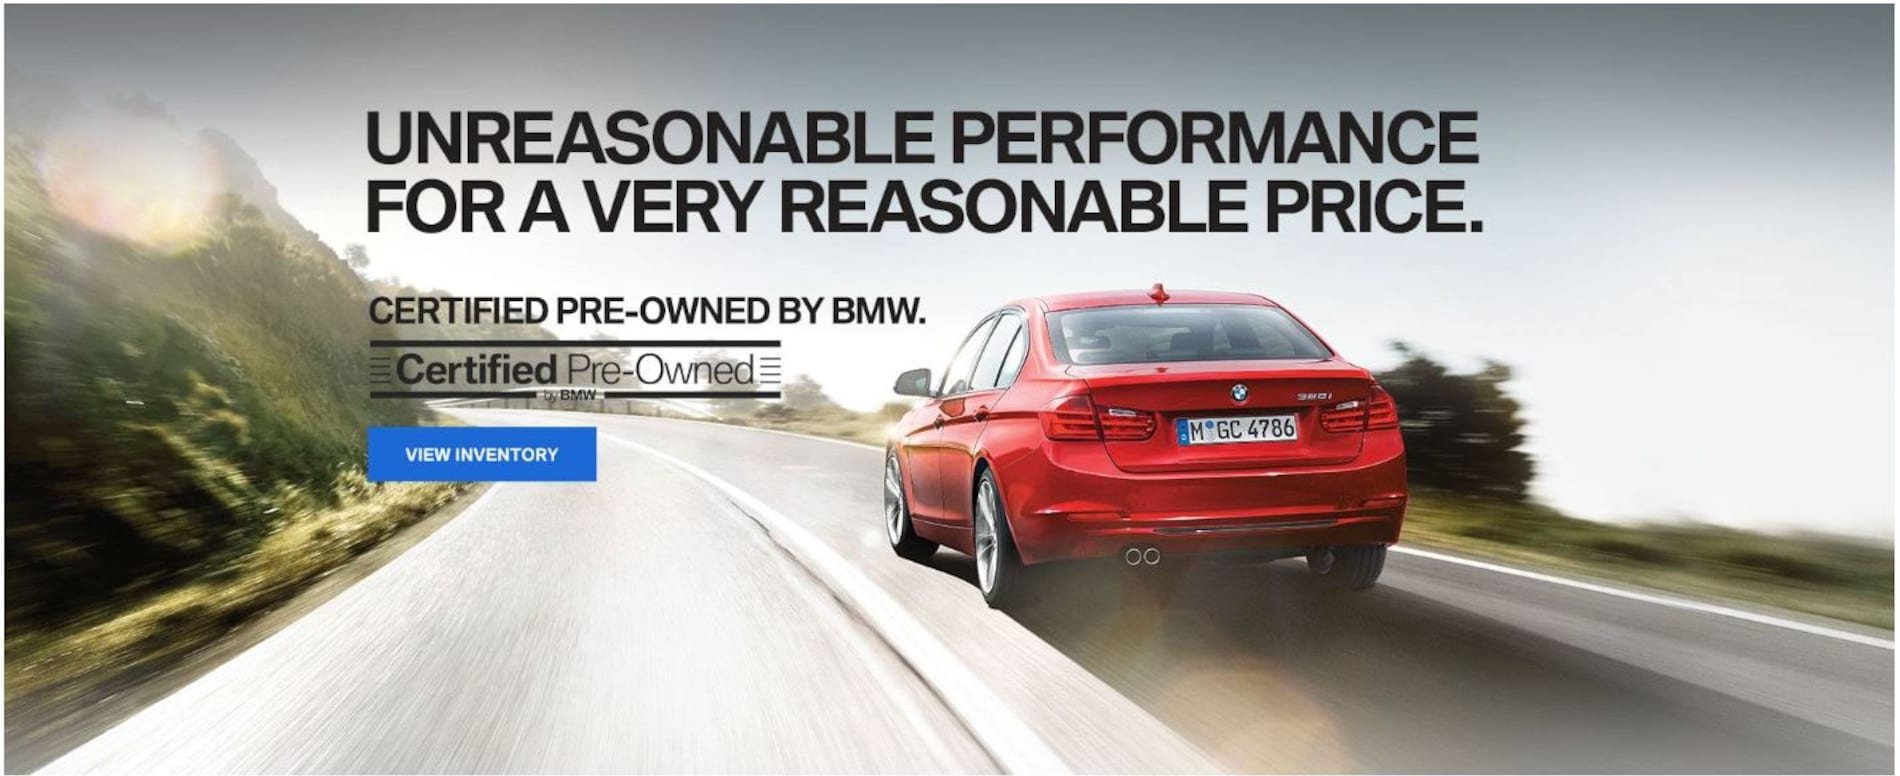 Century Bmw In Greenville Sc New Used Luxury Bmw Dealer ...